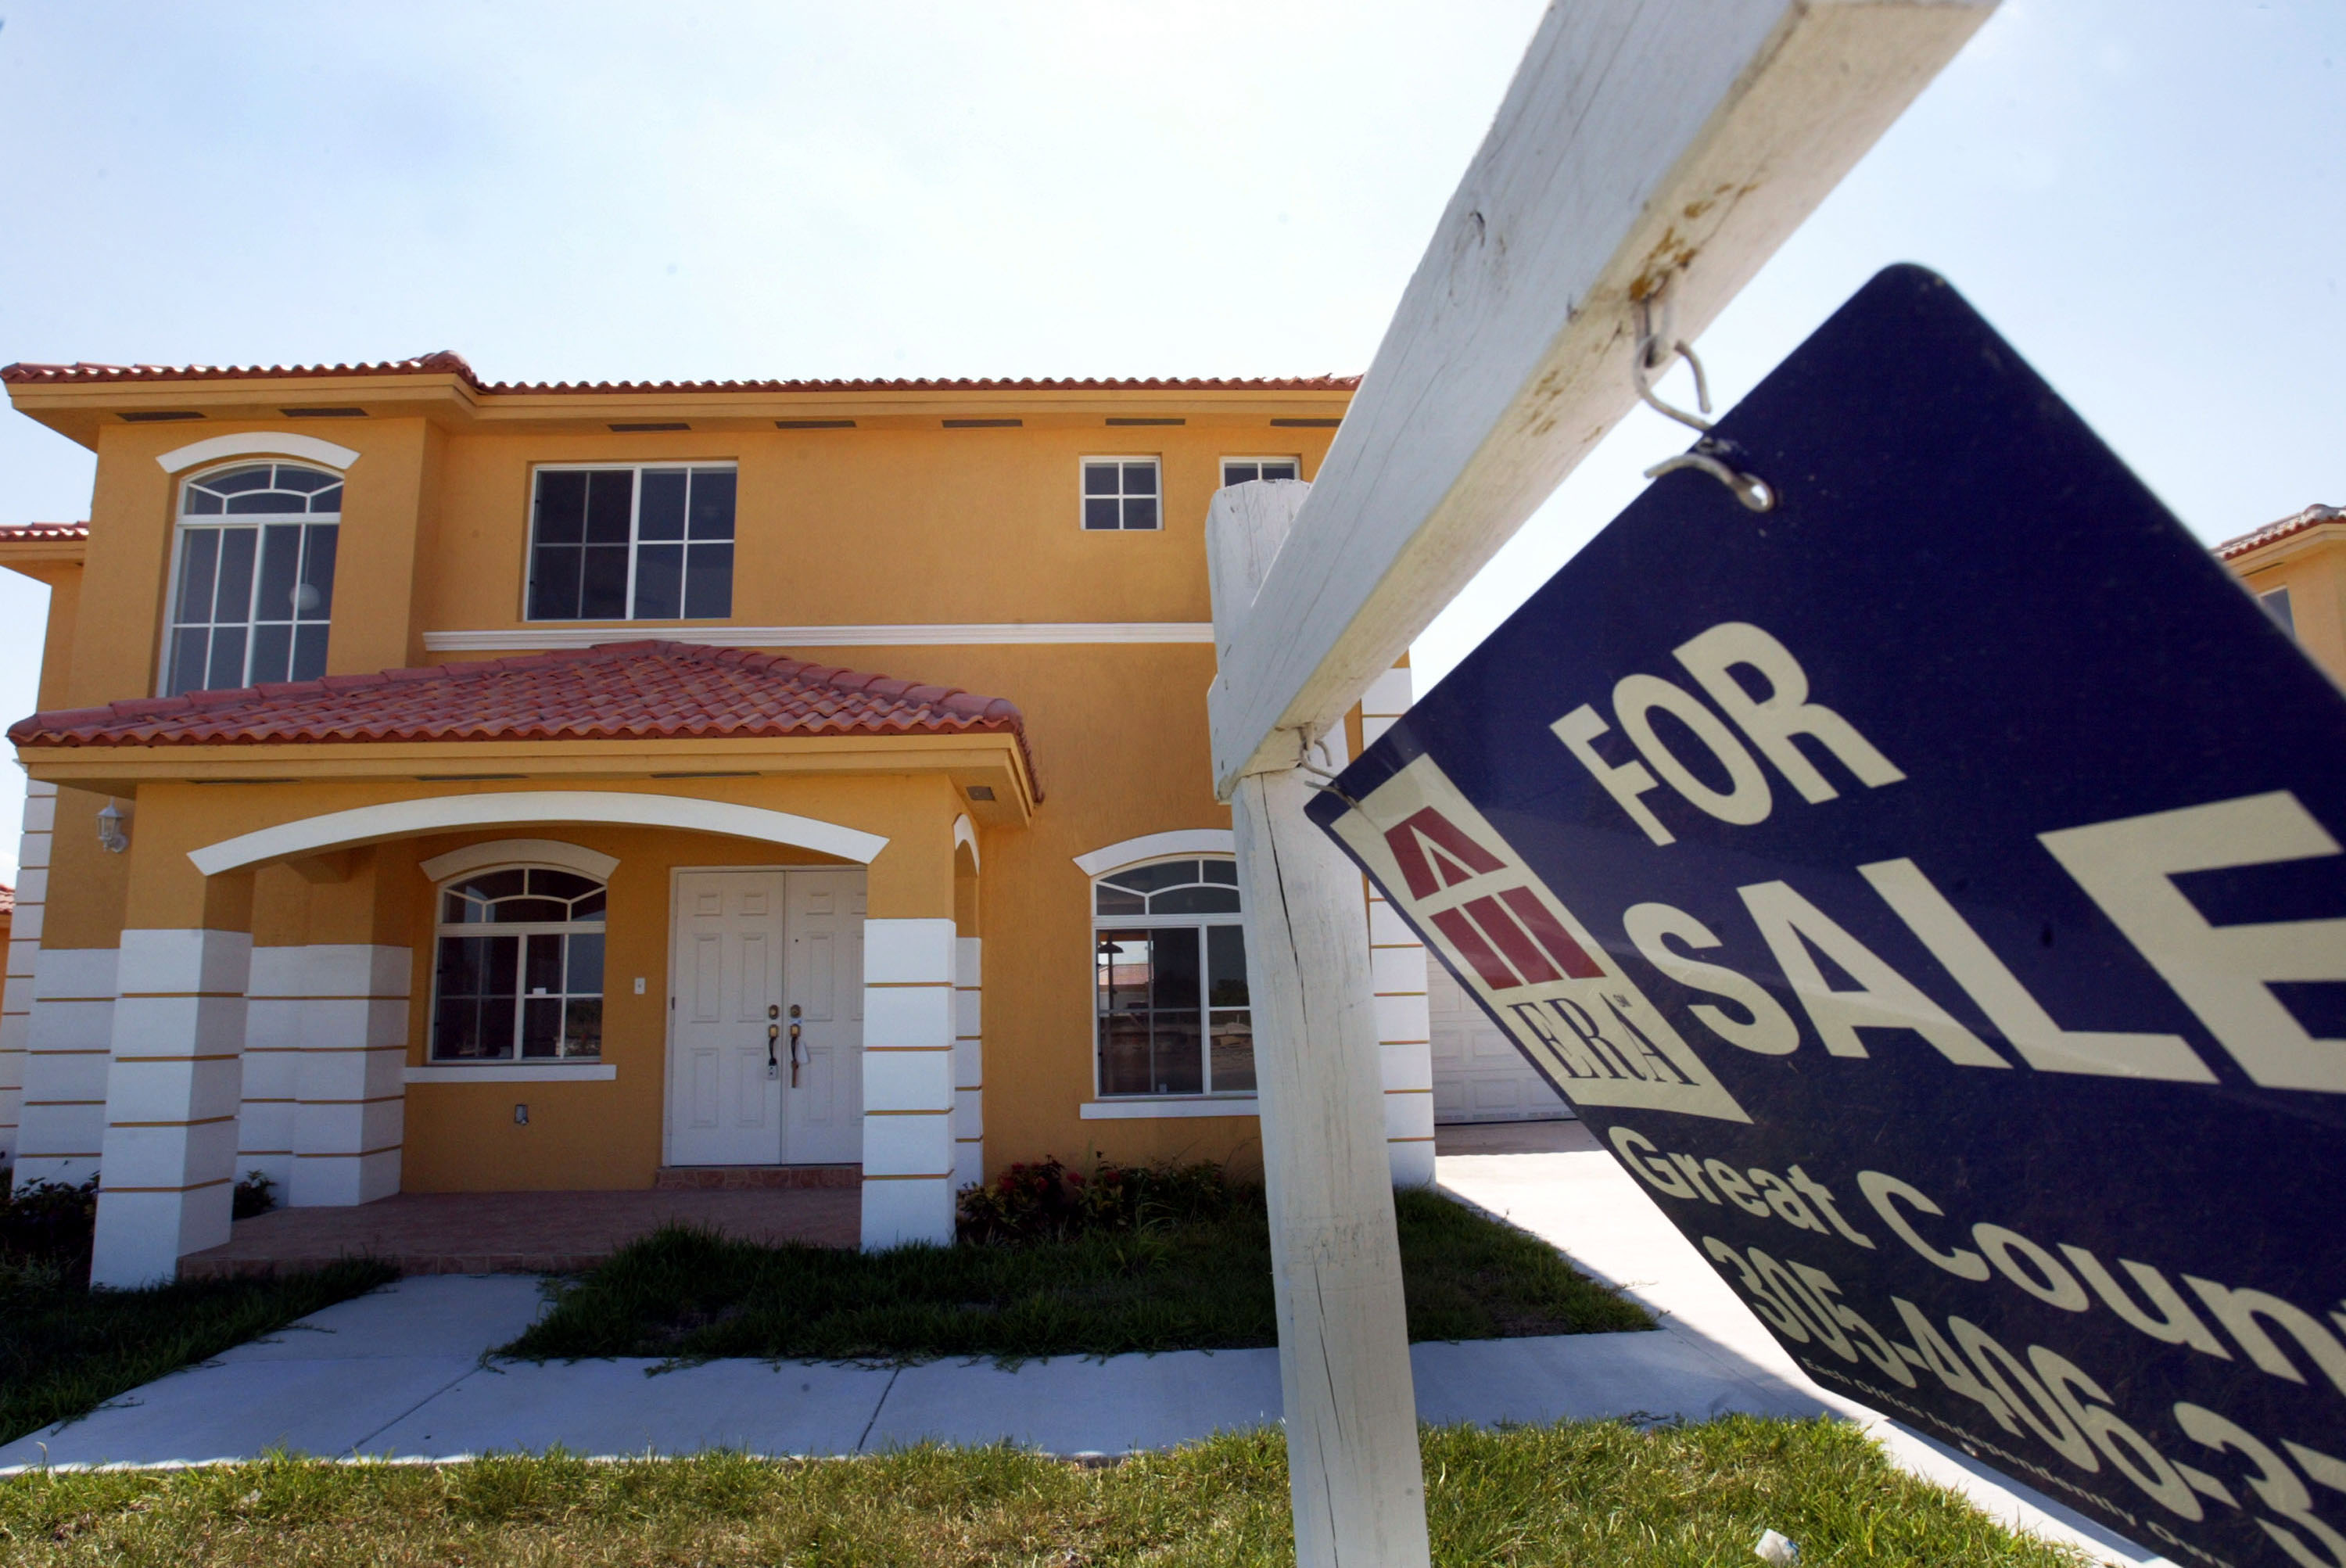 New Home Sales Plunge 11.8%